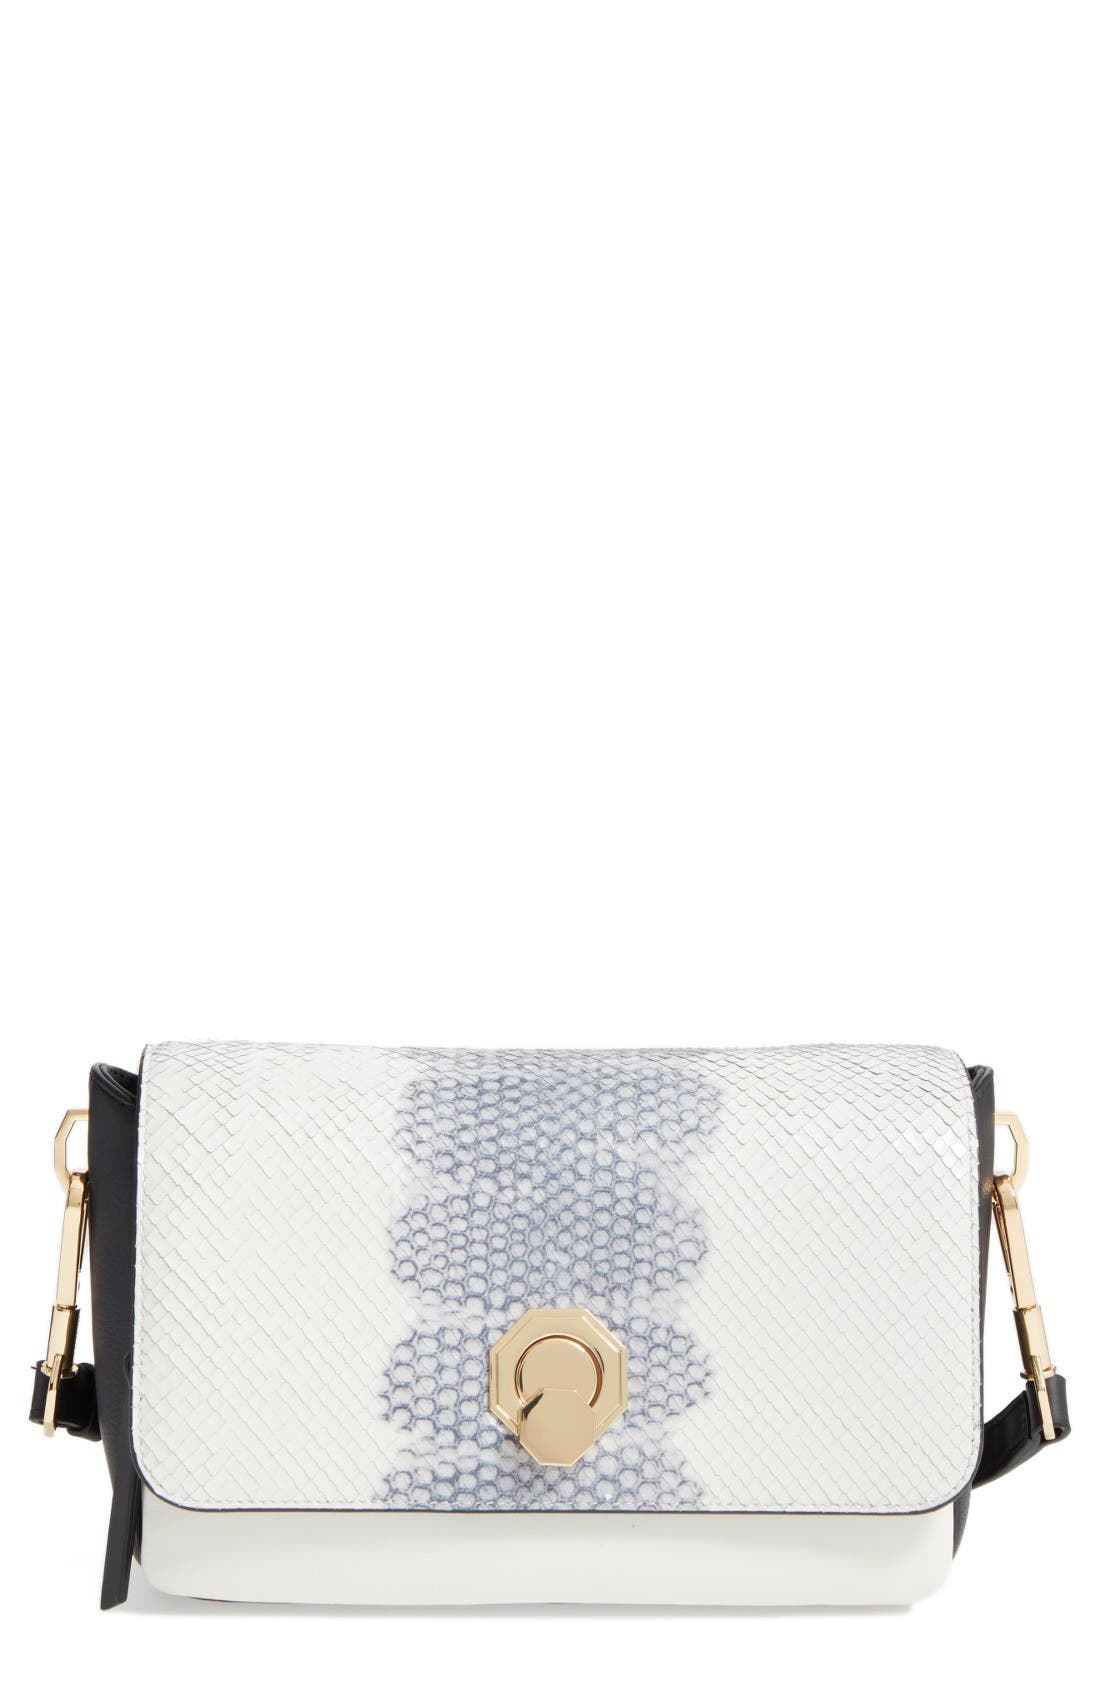 Alternate Image 1 Selected - Louise et Cie 'Small Alis' Leather Crossbody Bag